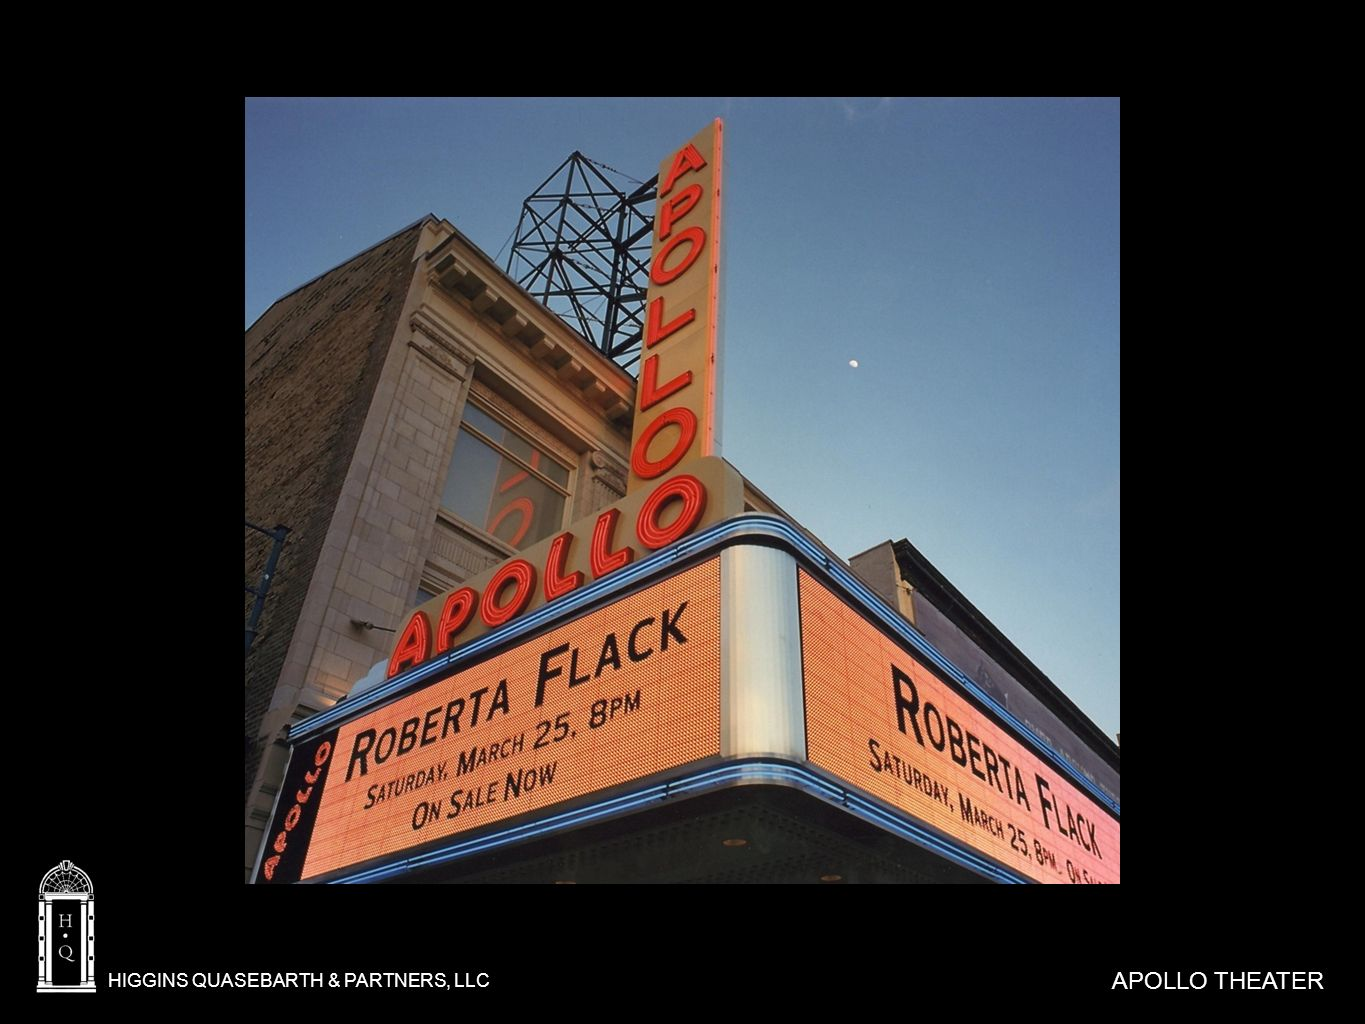 HIGGINS QUASEBARTH & PARTNERS, LLC APOLLO THEATER